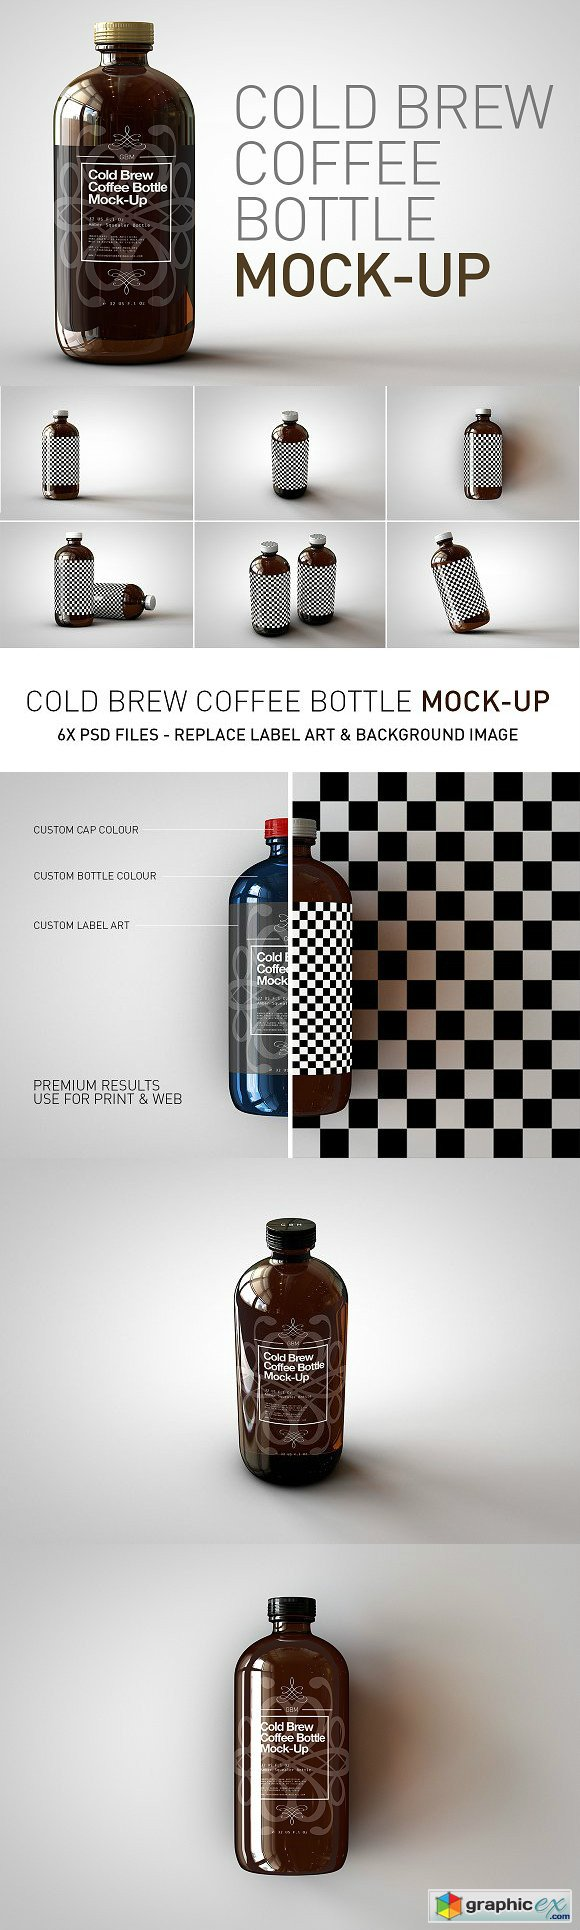 Cold Brew Coffee Bottle Mock-Up 1919862